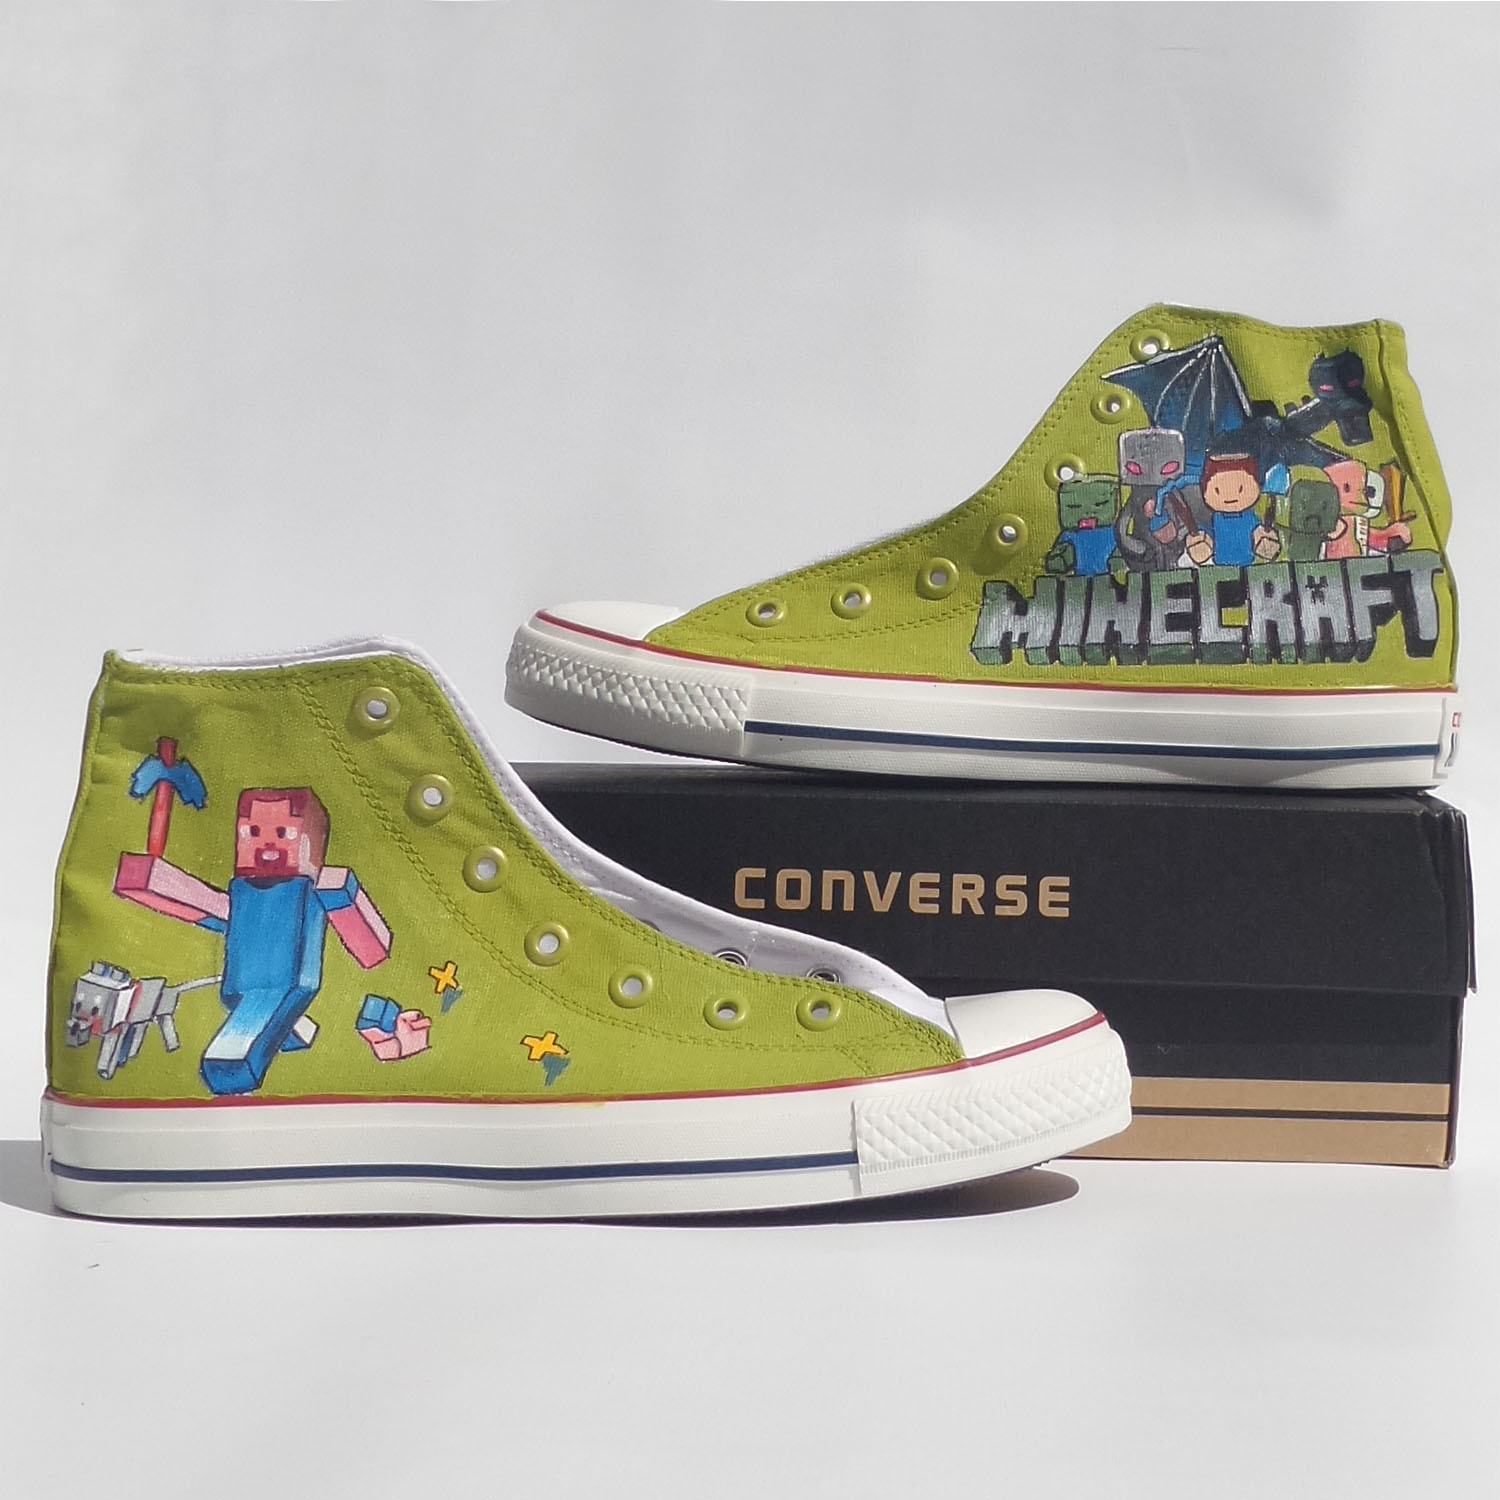 39df0cd61cb8 Minecraft Shoes - Custom Converse Shoes by CustomizedConverse.com